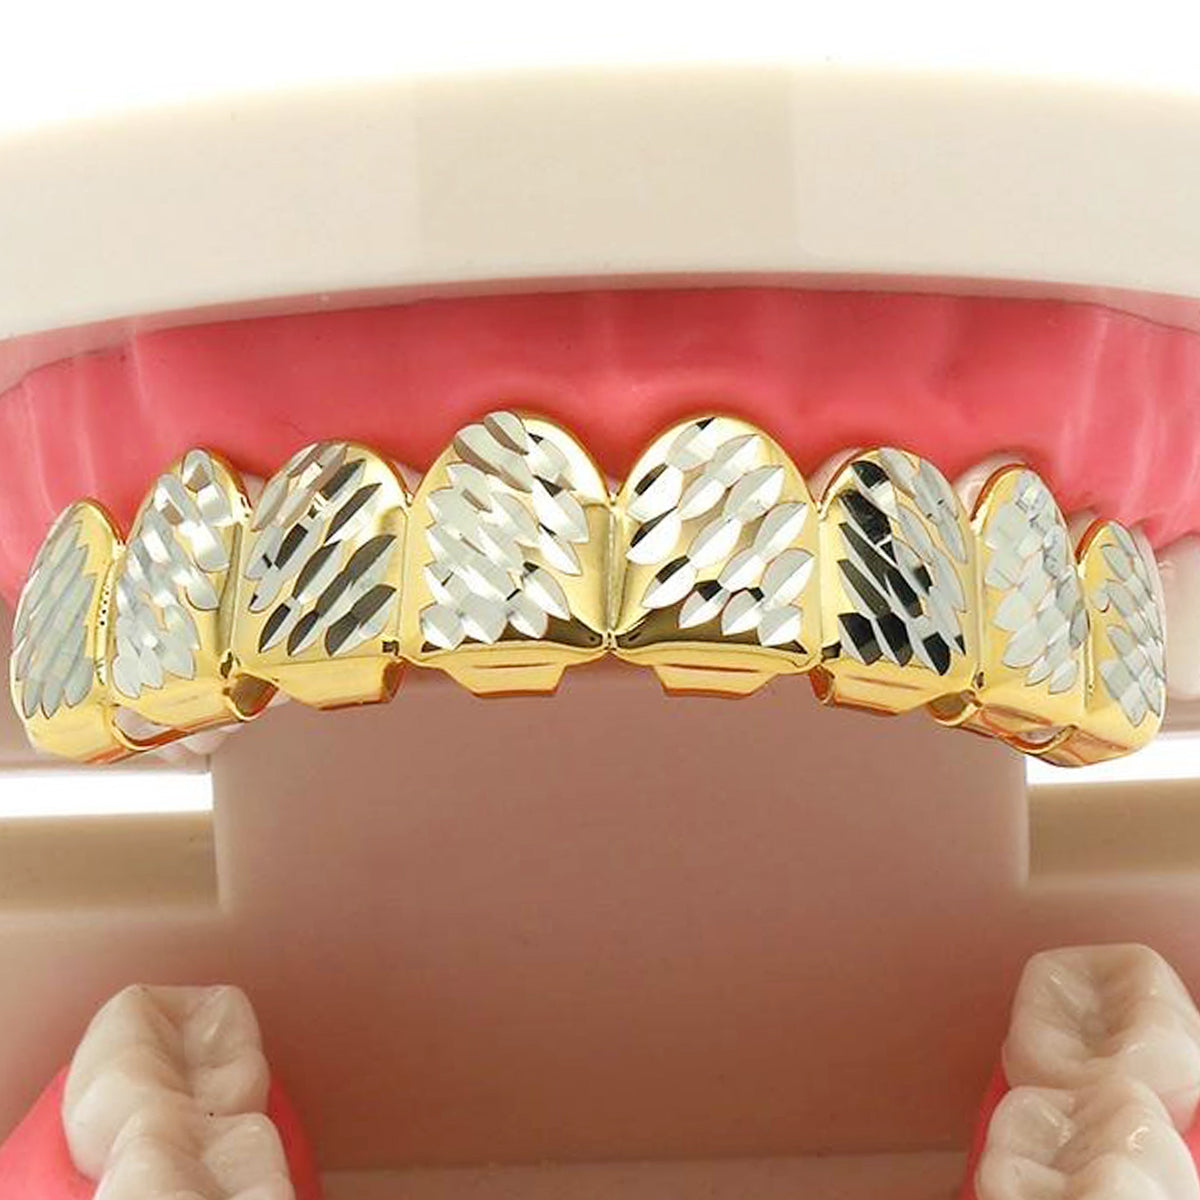 GOLD TOP GRILLZ 8 TOOTH SIDE DIAMOND CUT W/ SILVER